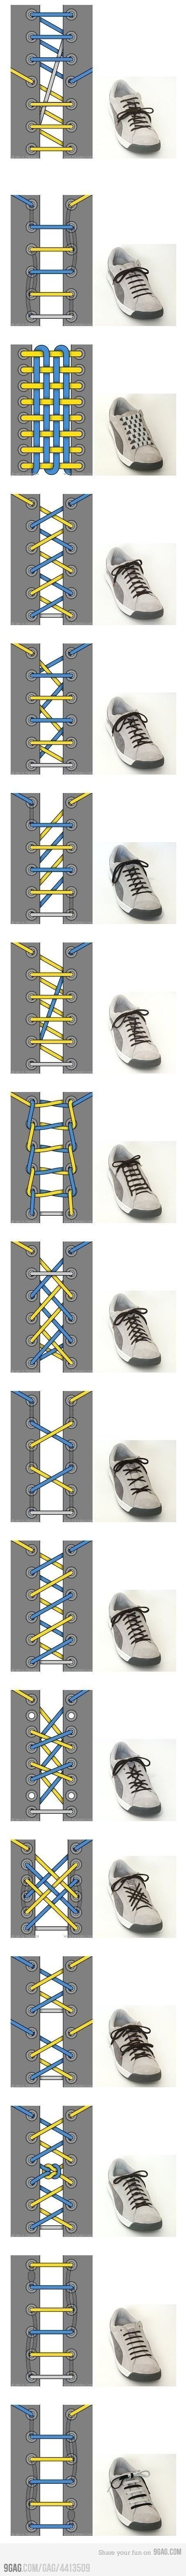 17 Ways To Tie Your Shoelace.  Probably 16 more than you ever needed to know about, but still!